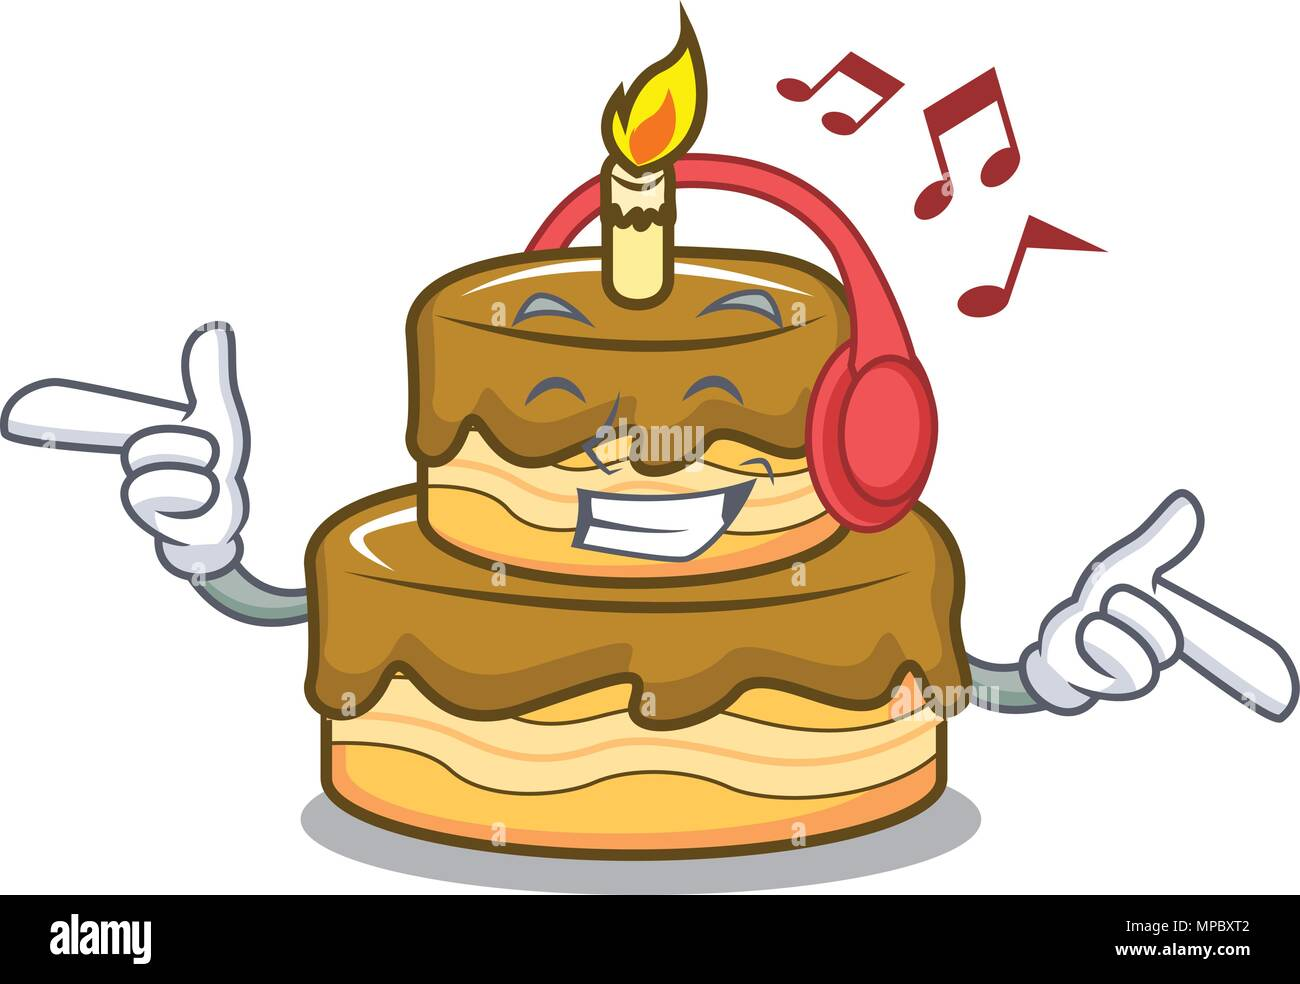 Pleasing Listening Music Birthday Cake Mascot Cartoon Stock Vector Art Funny Birthday Cards Online Alyptdamsfinfo